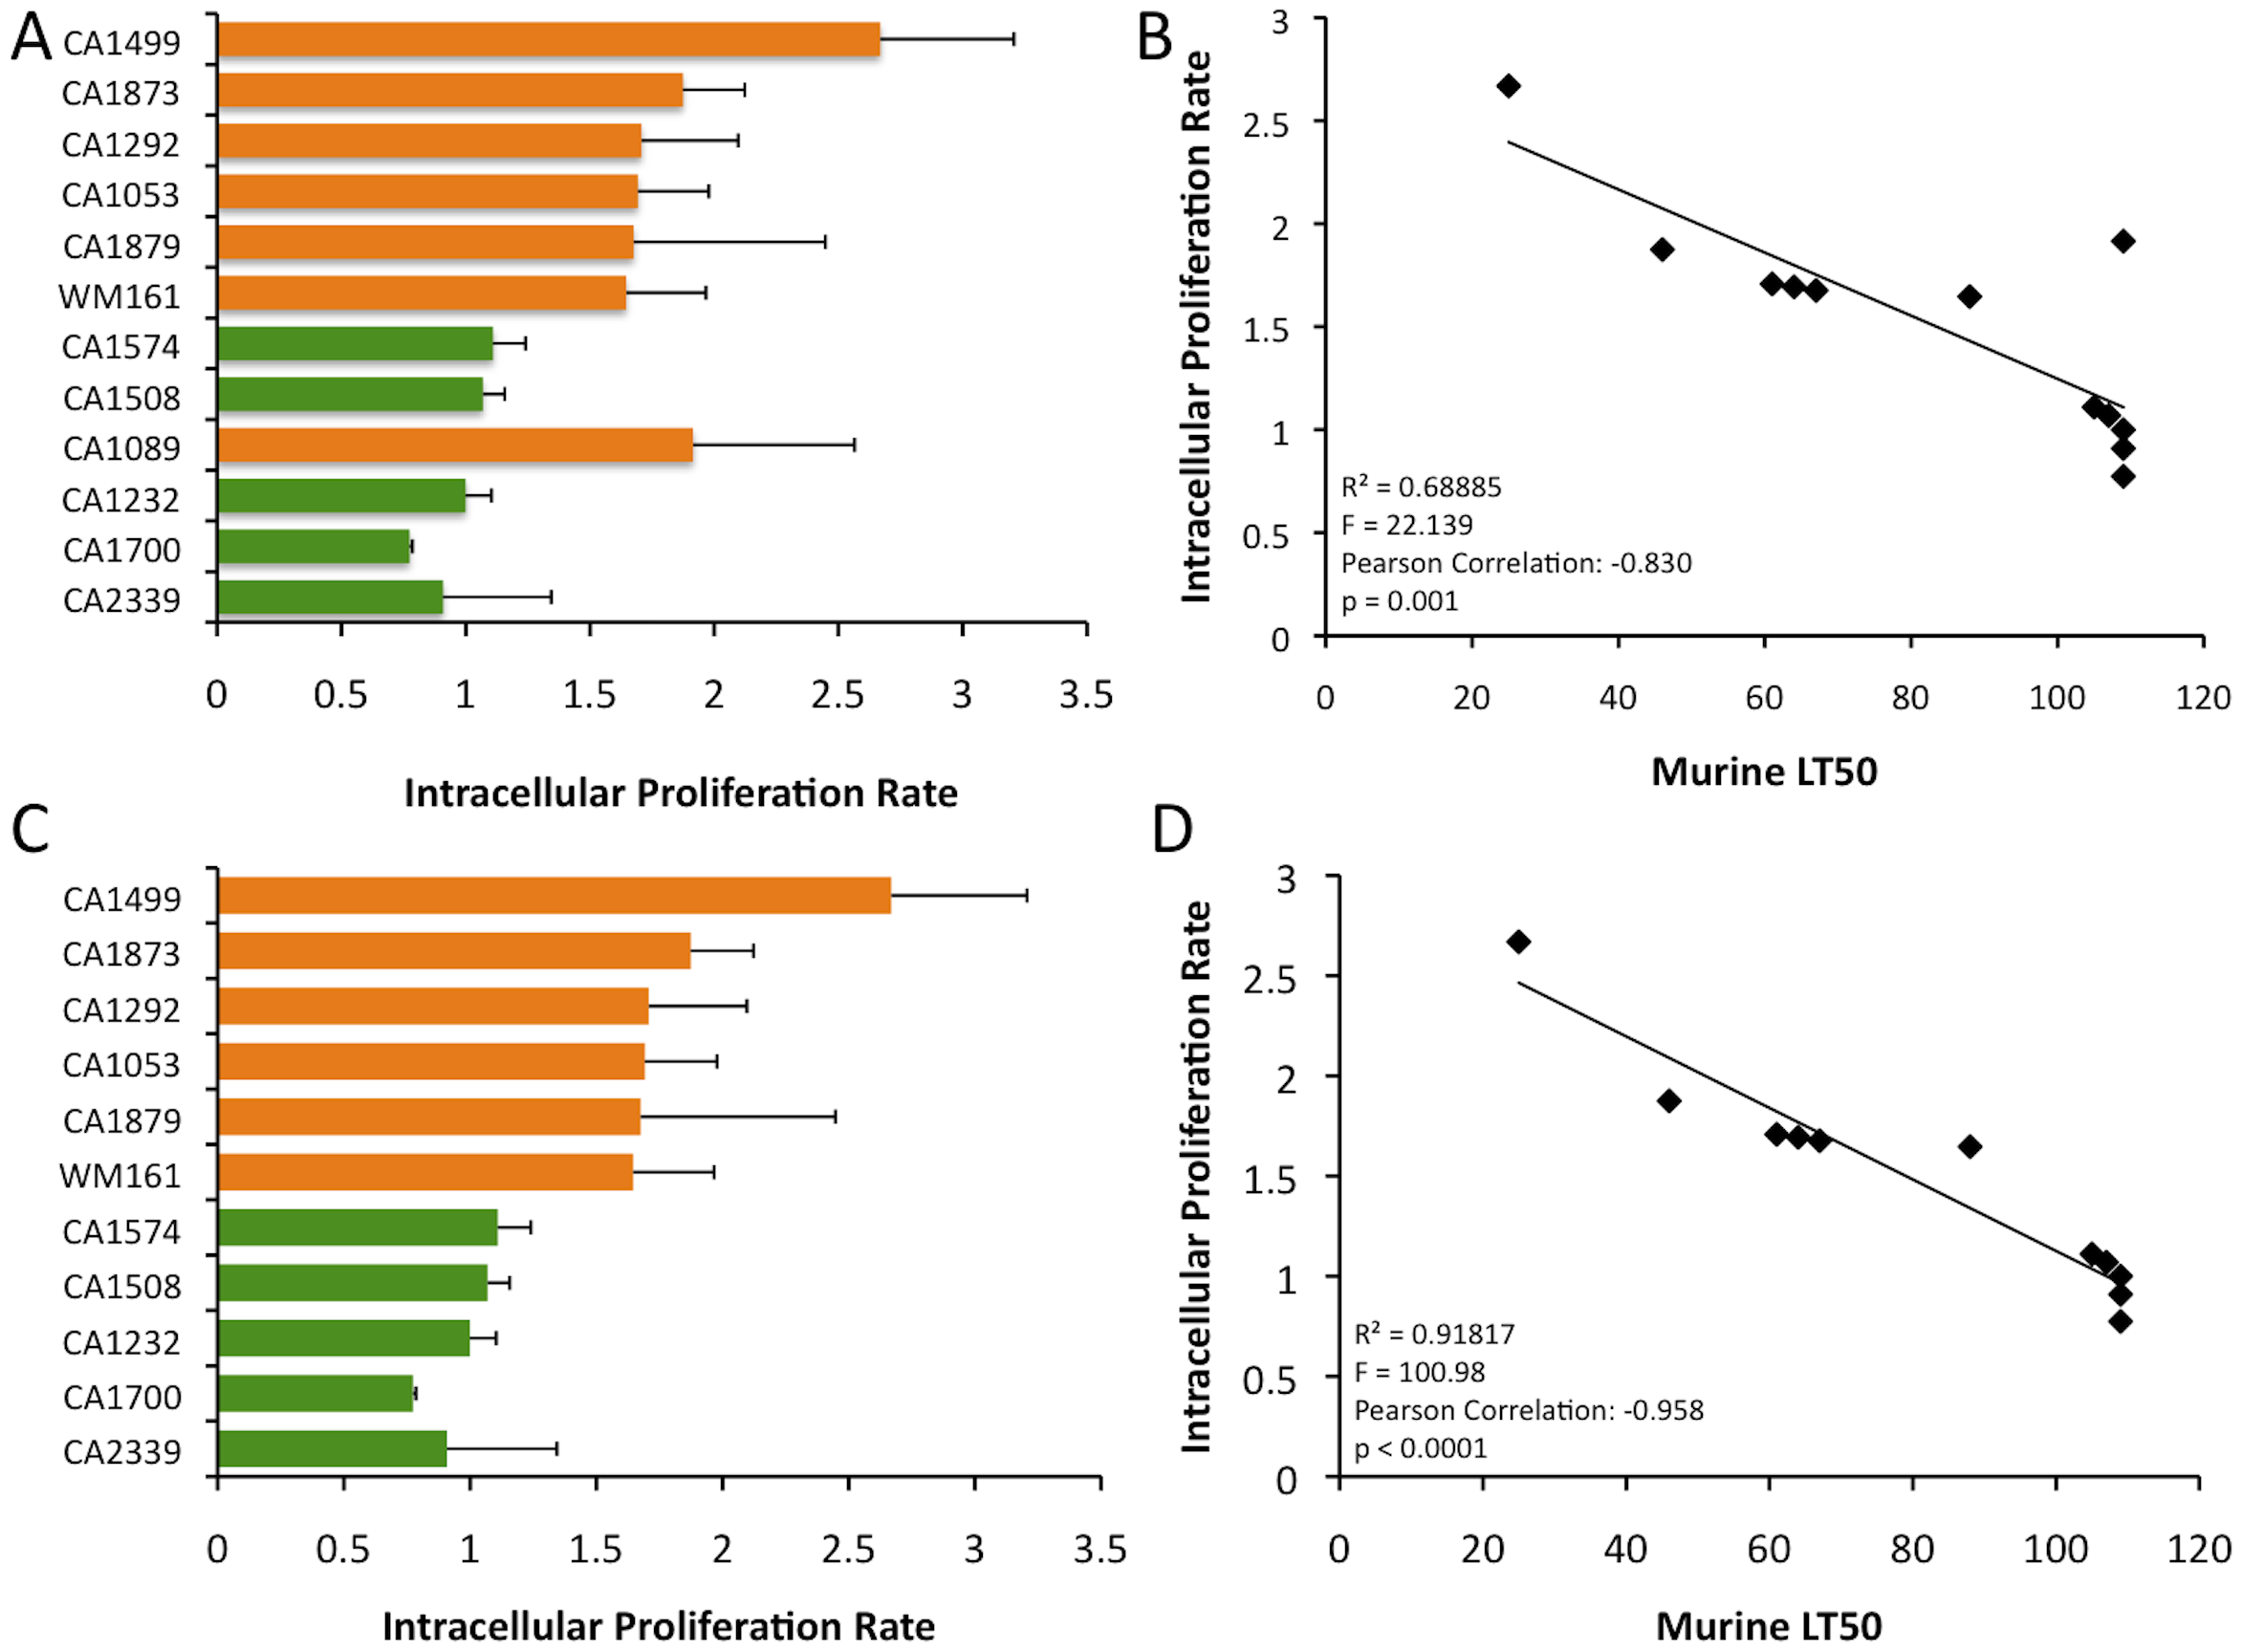 In vitro analysis of intracellular proliferation rates (IPR) show increased proliferation levels in VGIIIa and IPR values correlate with in vivo virulence.